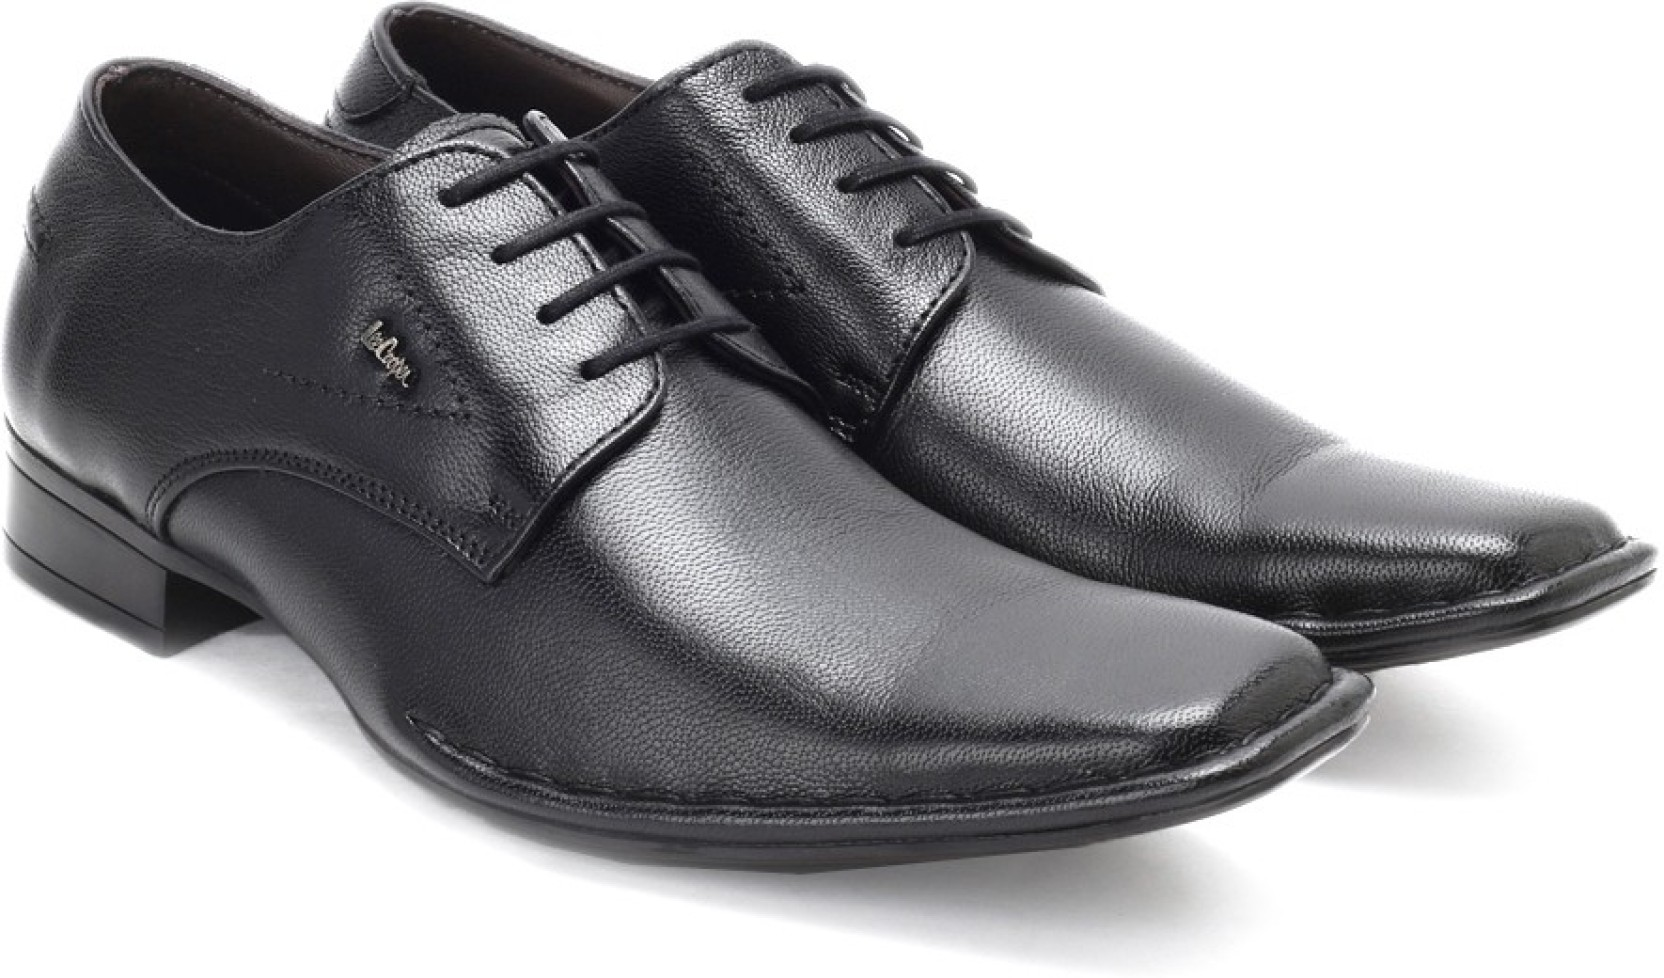 Lee Cooper Leather Shoe Care